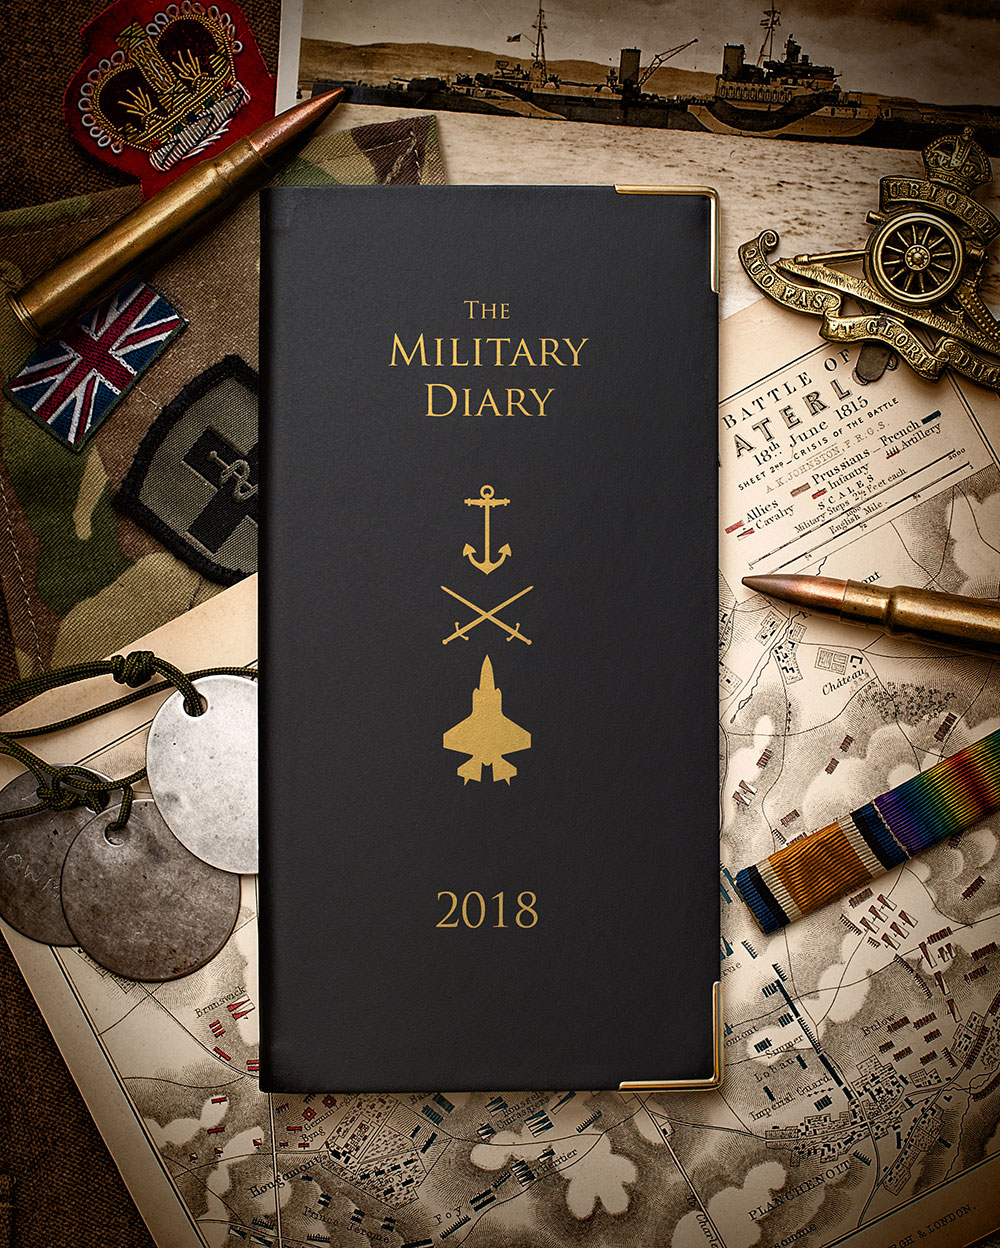 The Military Diary 2018